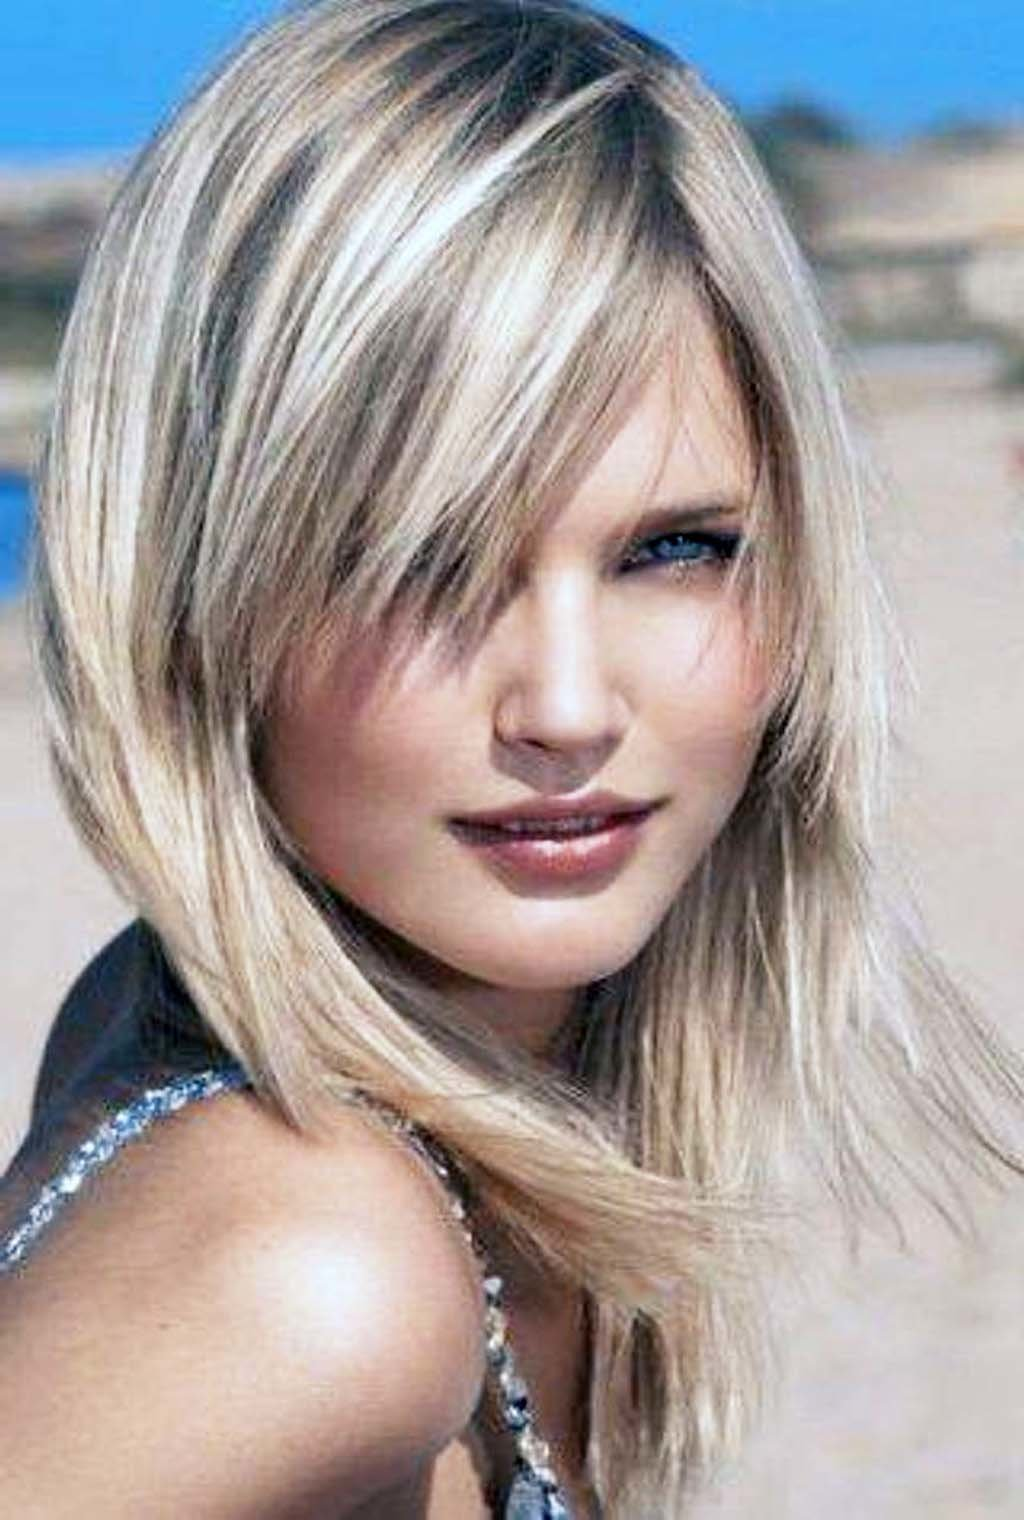 The Best 13 Hairstyles For Round Chubby Faces Best Ellecrafts Pictures